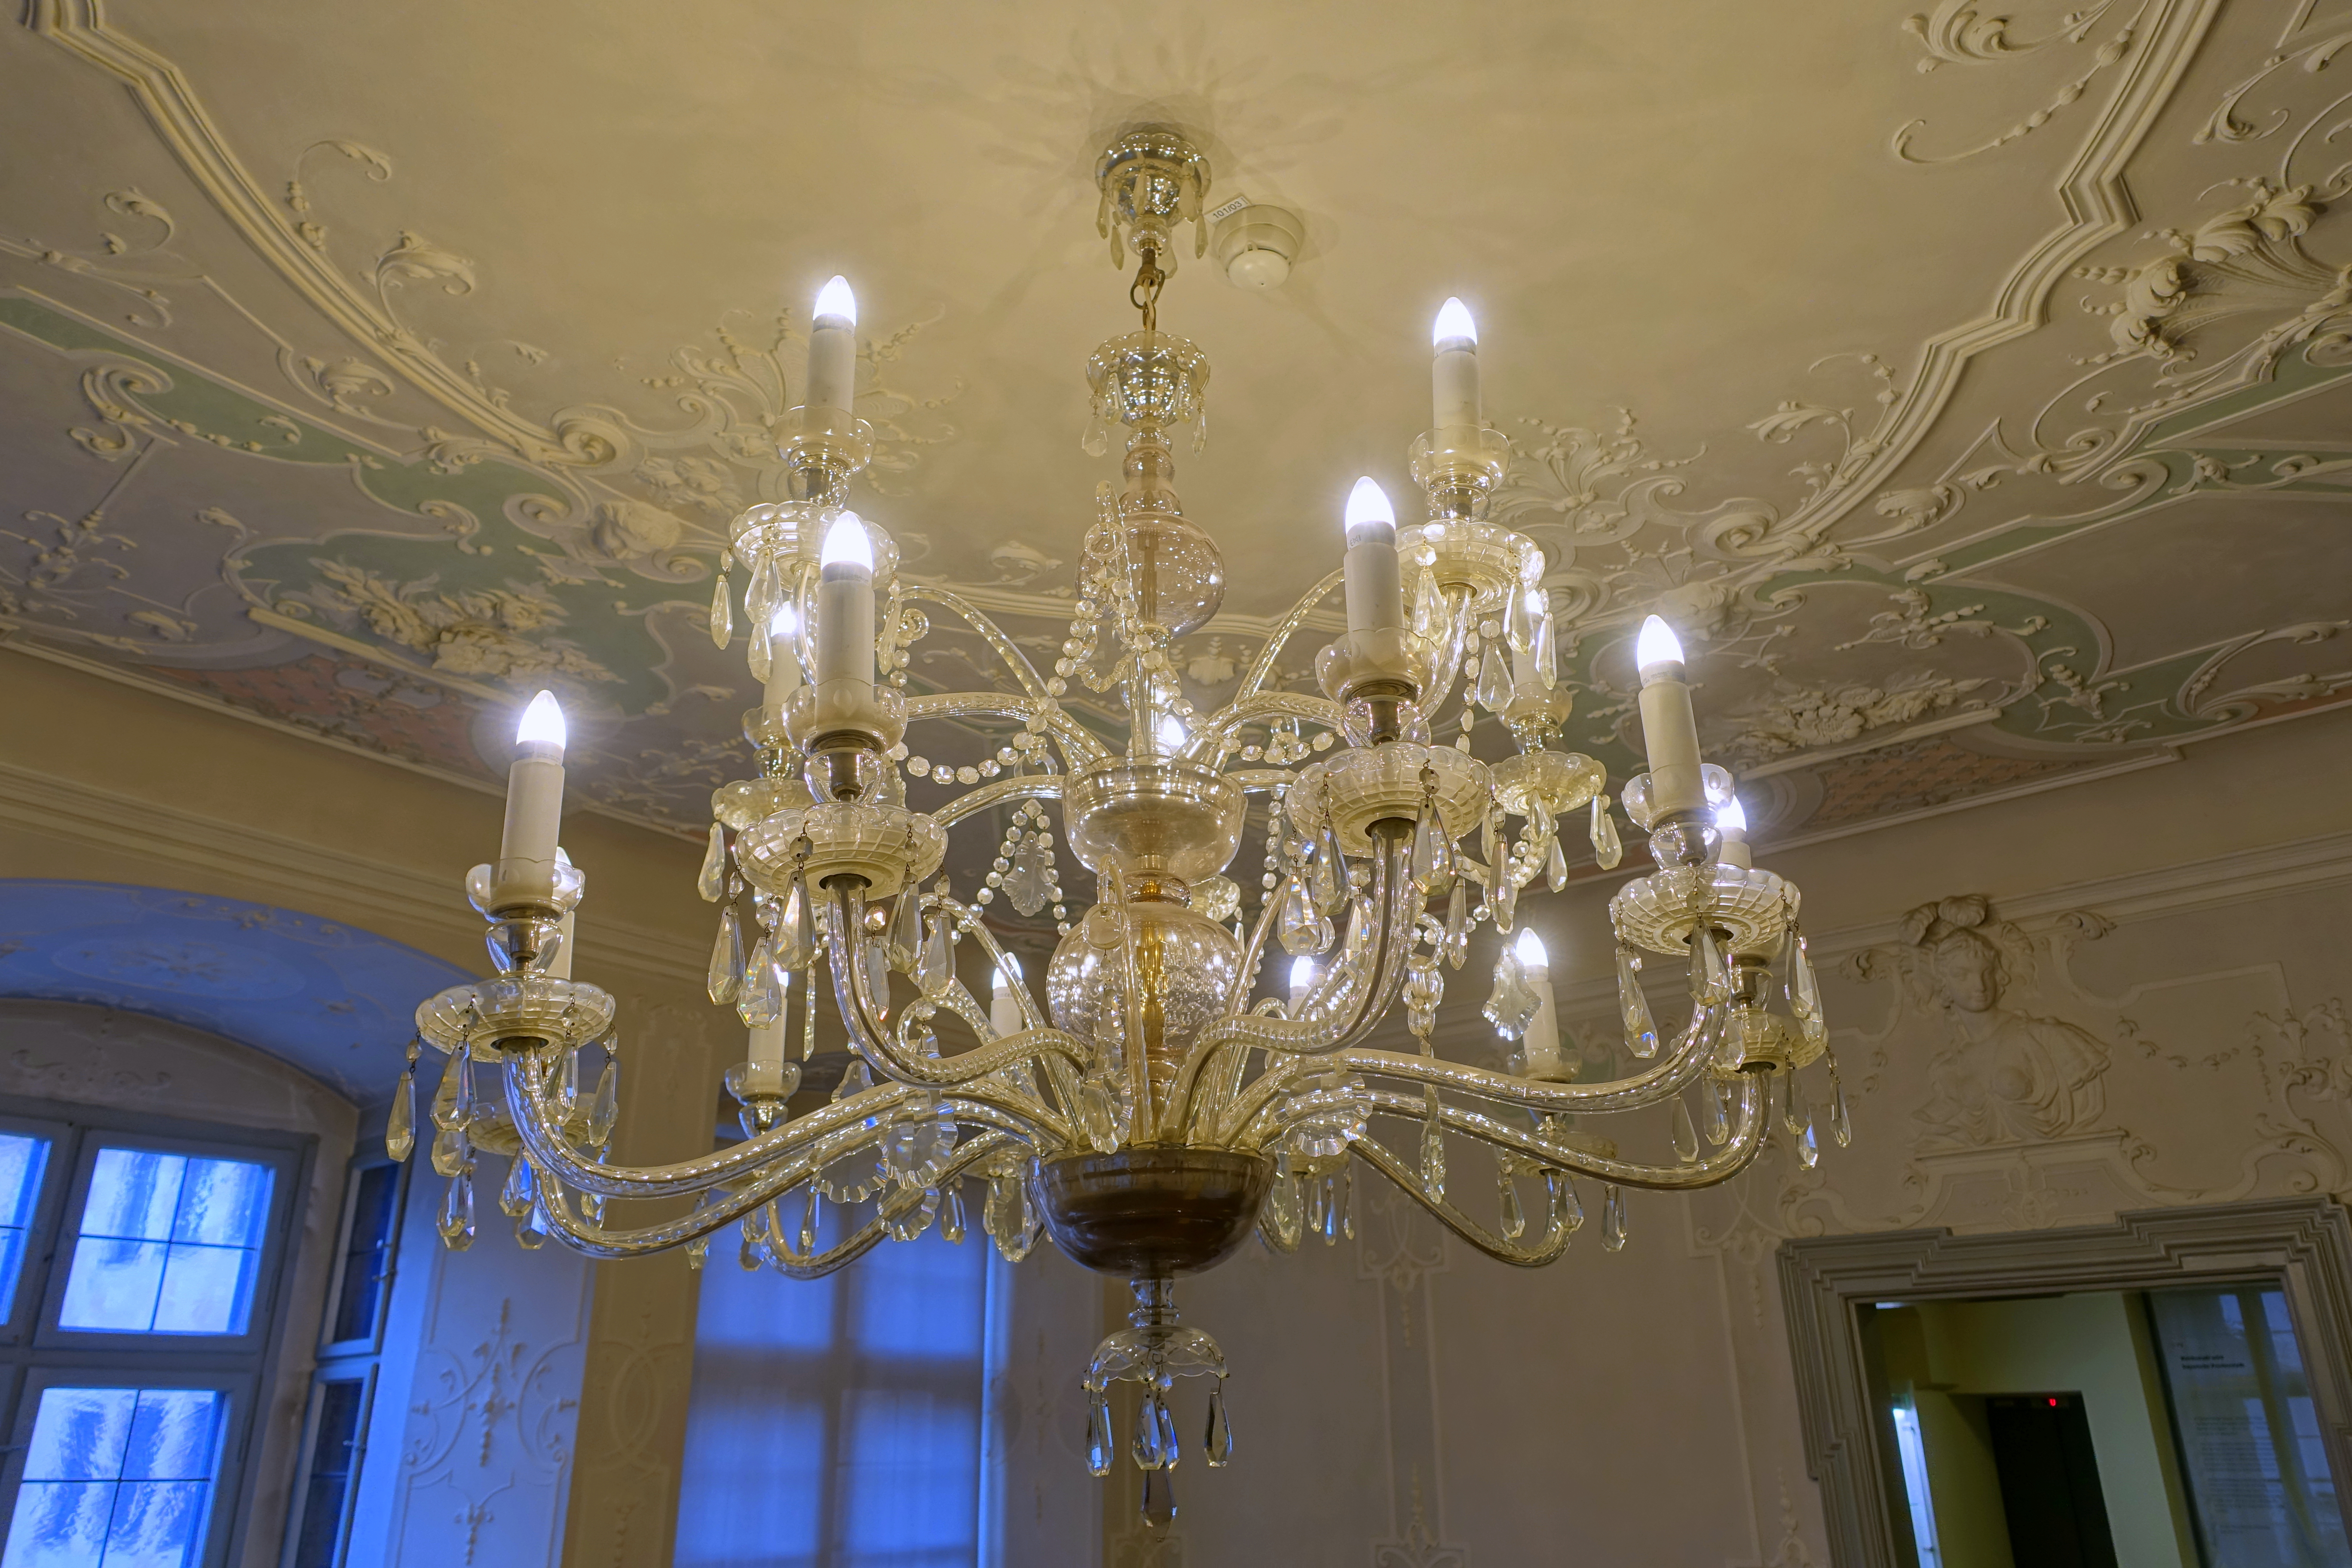 Filechandelier and ceiling music room stucco by donato polli filechandelier and ceiling music room stucco by donato polli 1734 mozeypictures Image collections